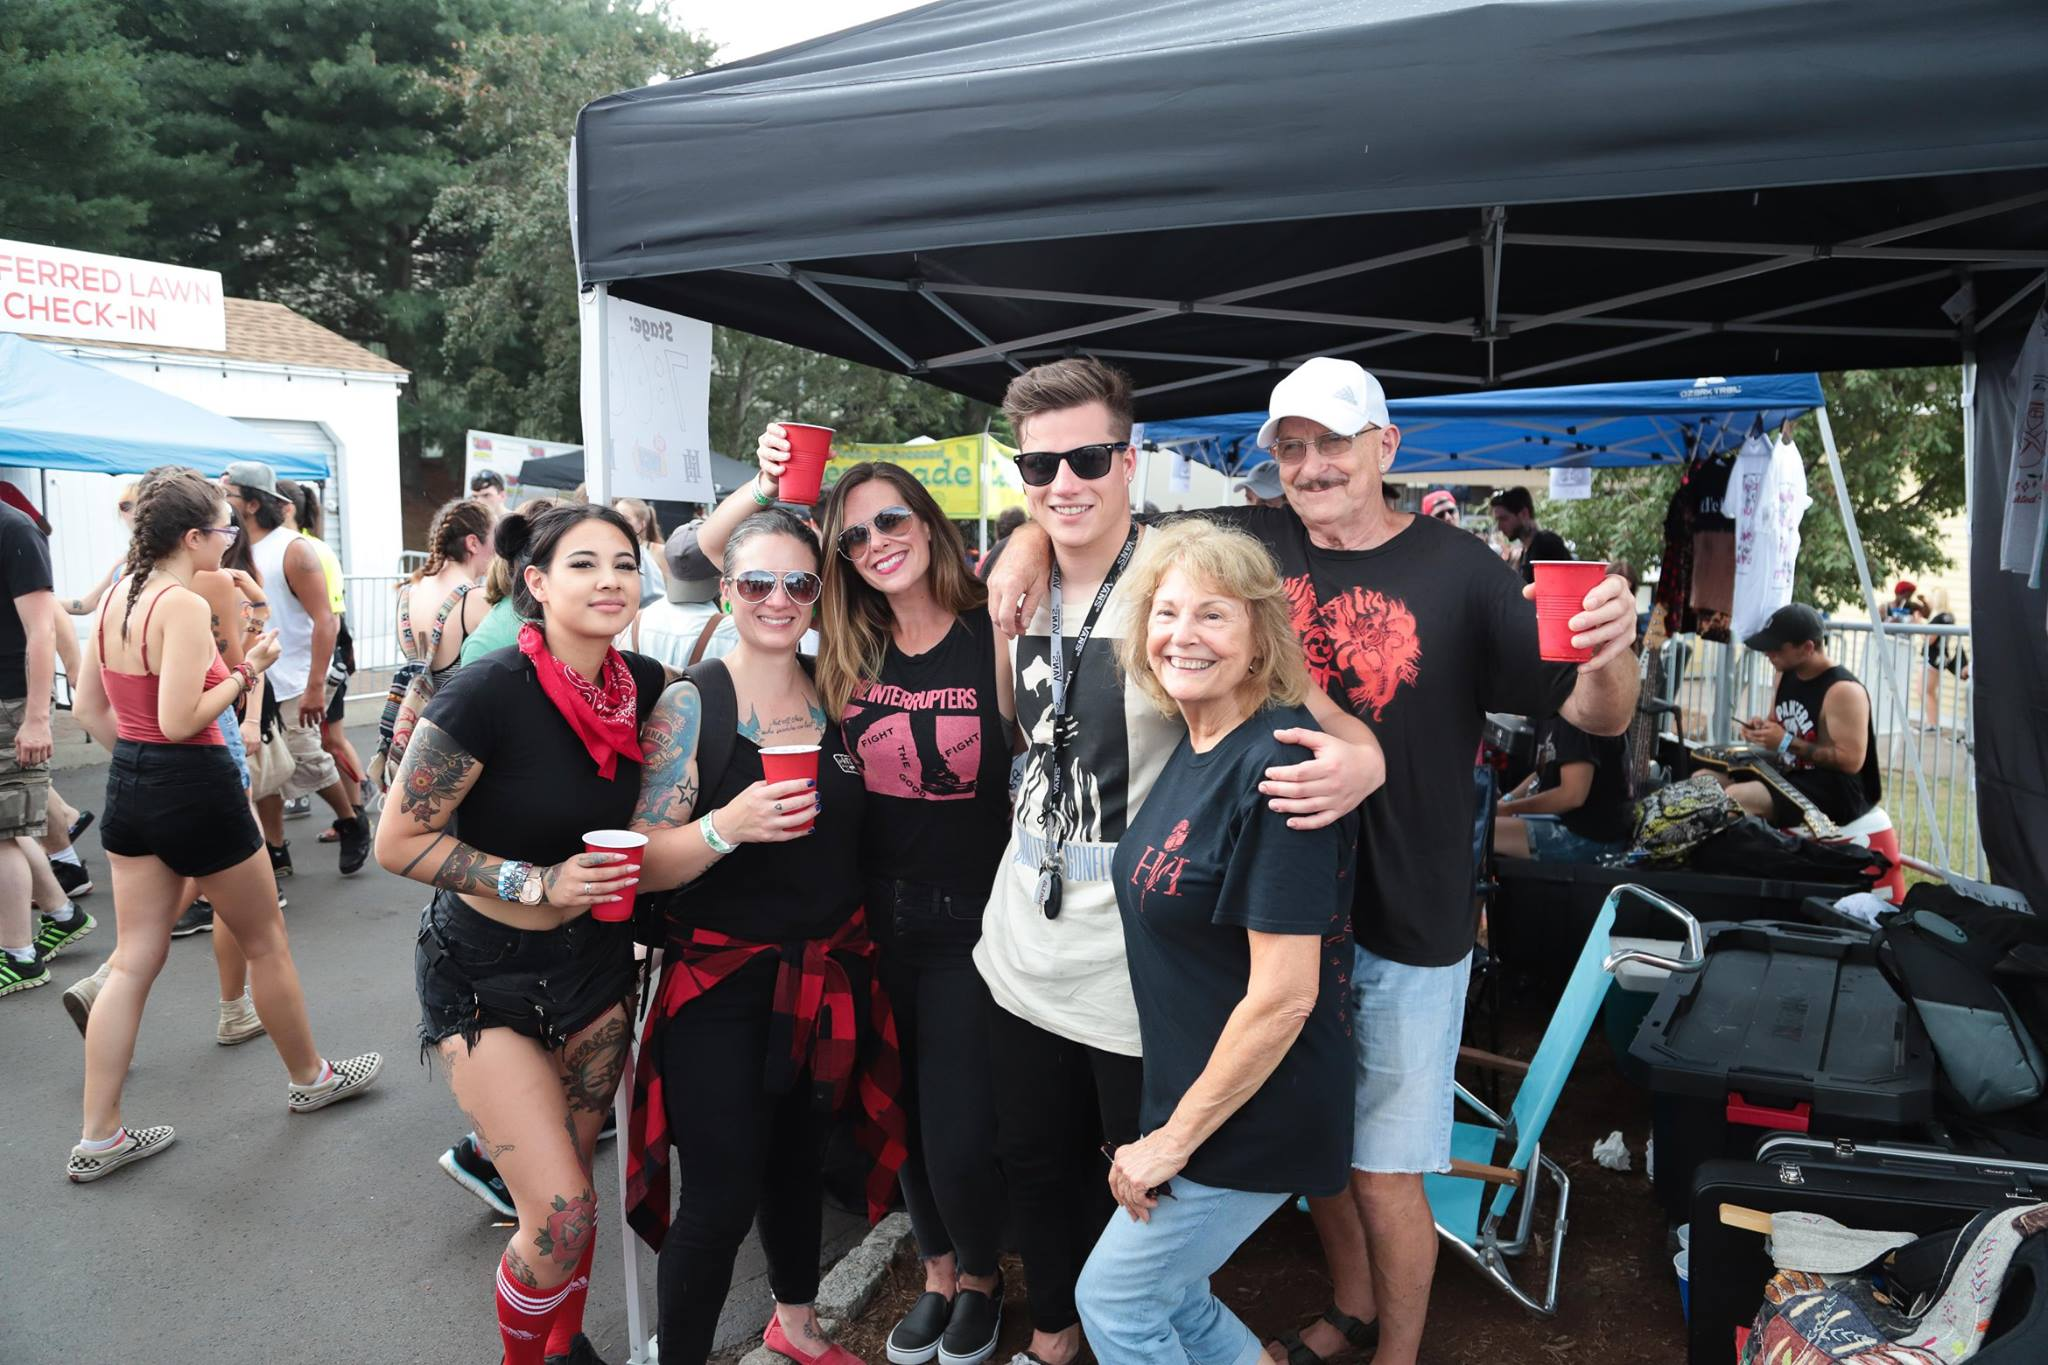 Warped Tour with family